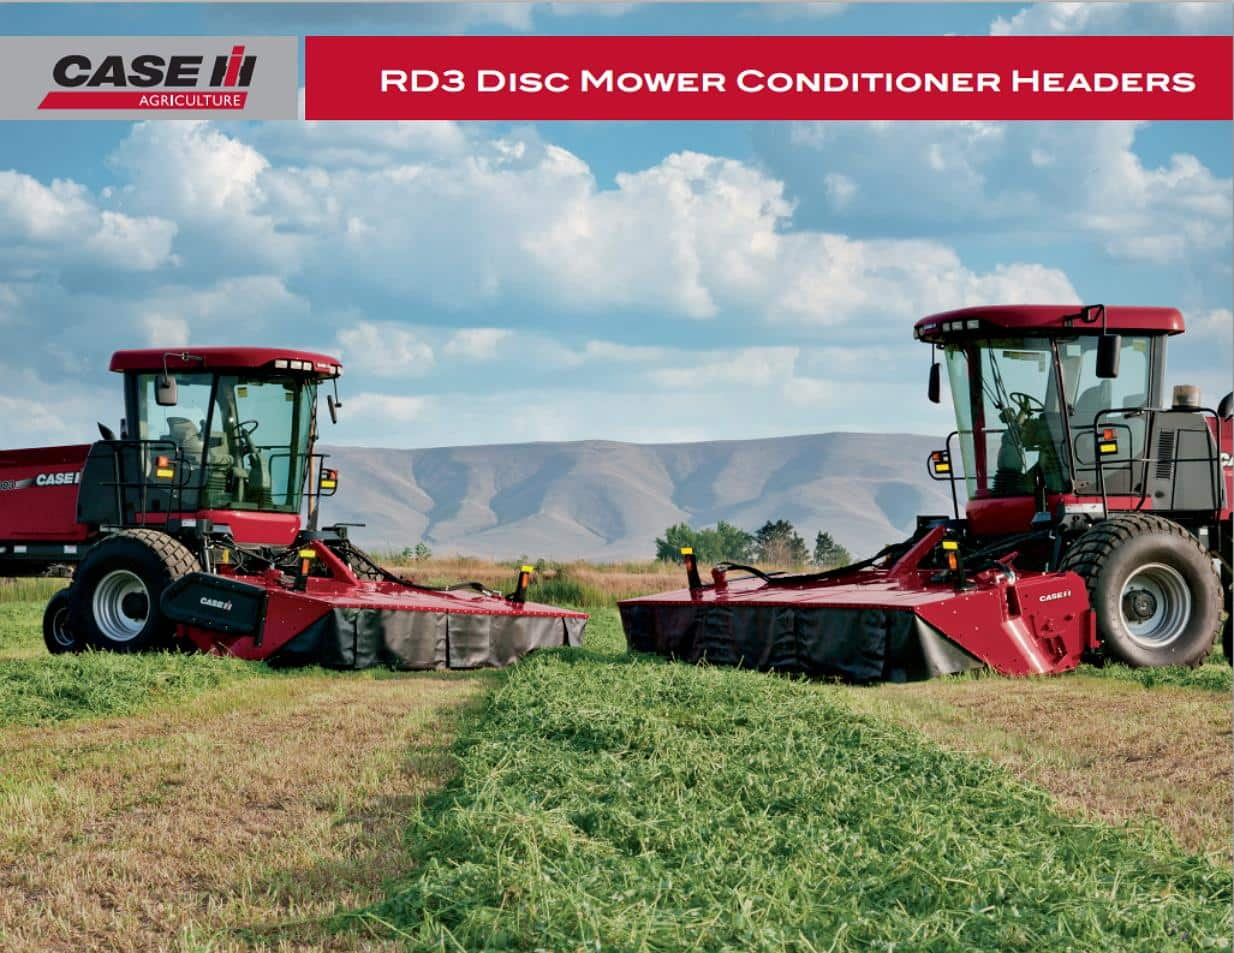 RD3 Disc Mower Conditioner Spec Sheet